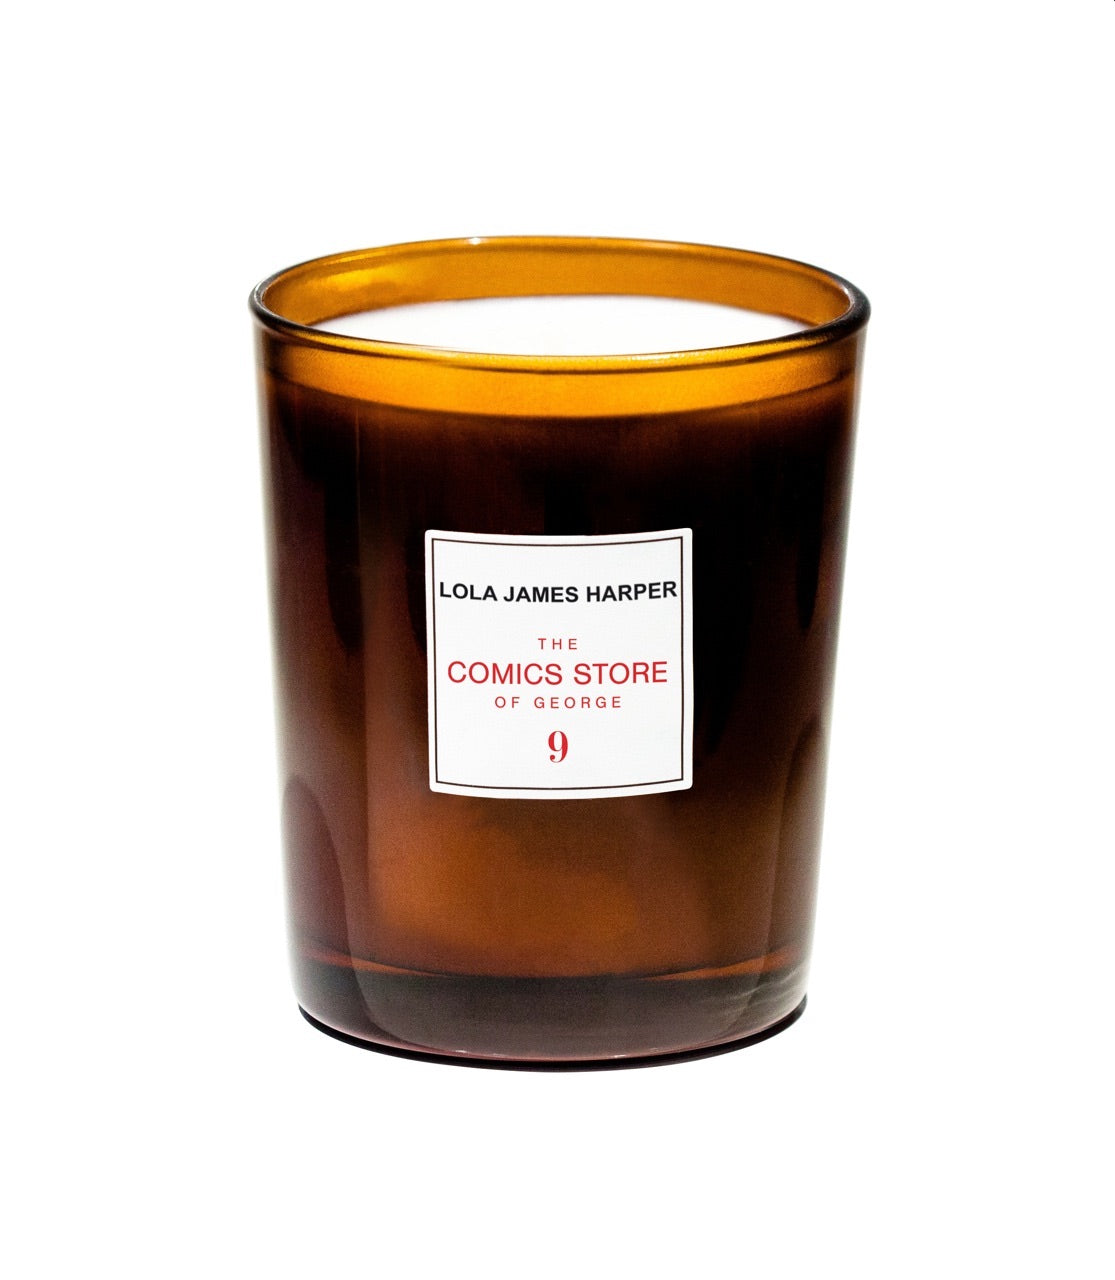 9 The Comics Store of George - 190G CANDLE